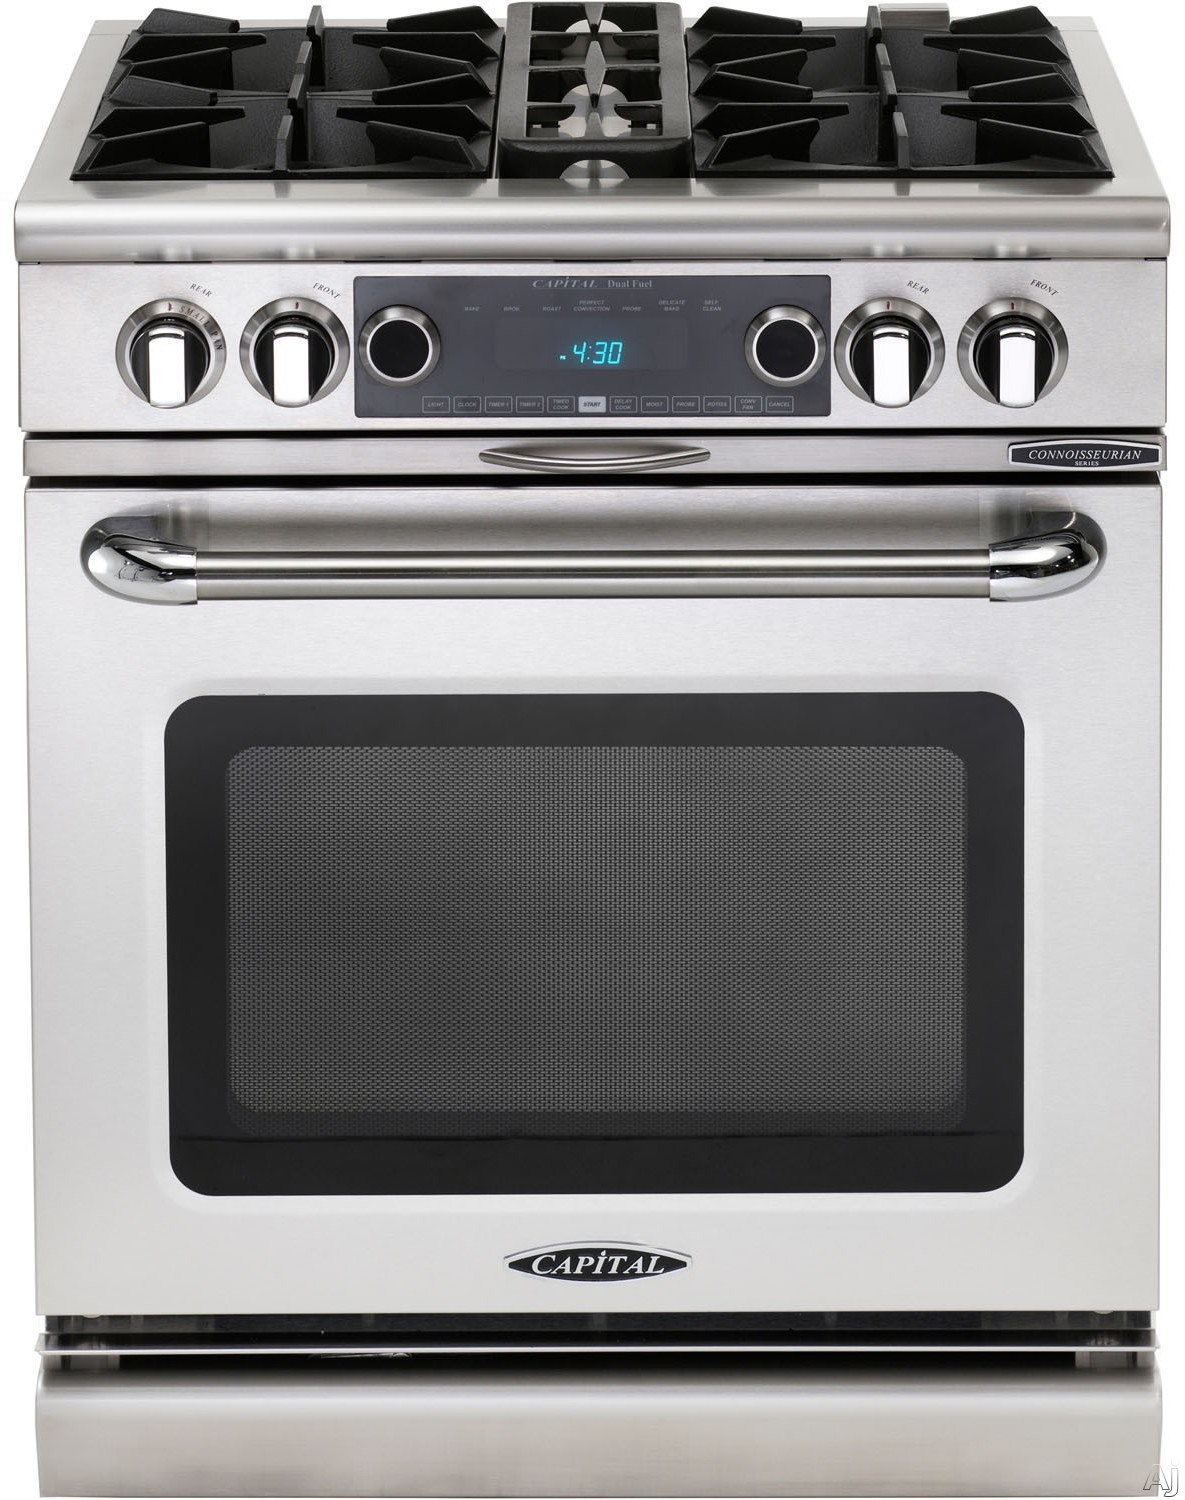 "Capital Connoisseurian Series COB304L 30 Inch Pro-Style Dual Fuel Range with 4 Open Burners, Removable Spill Pans, Dual Air-Flow Convection, Moto-Rotisâ""¢ Rotisserie, Moist Bake Option, Flex-Rollâ""¢ Oven Racks and 5.4 cu. ft. Oven: Stainless Steel, Liqui"